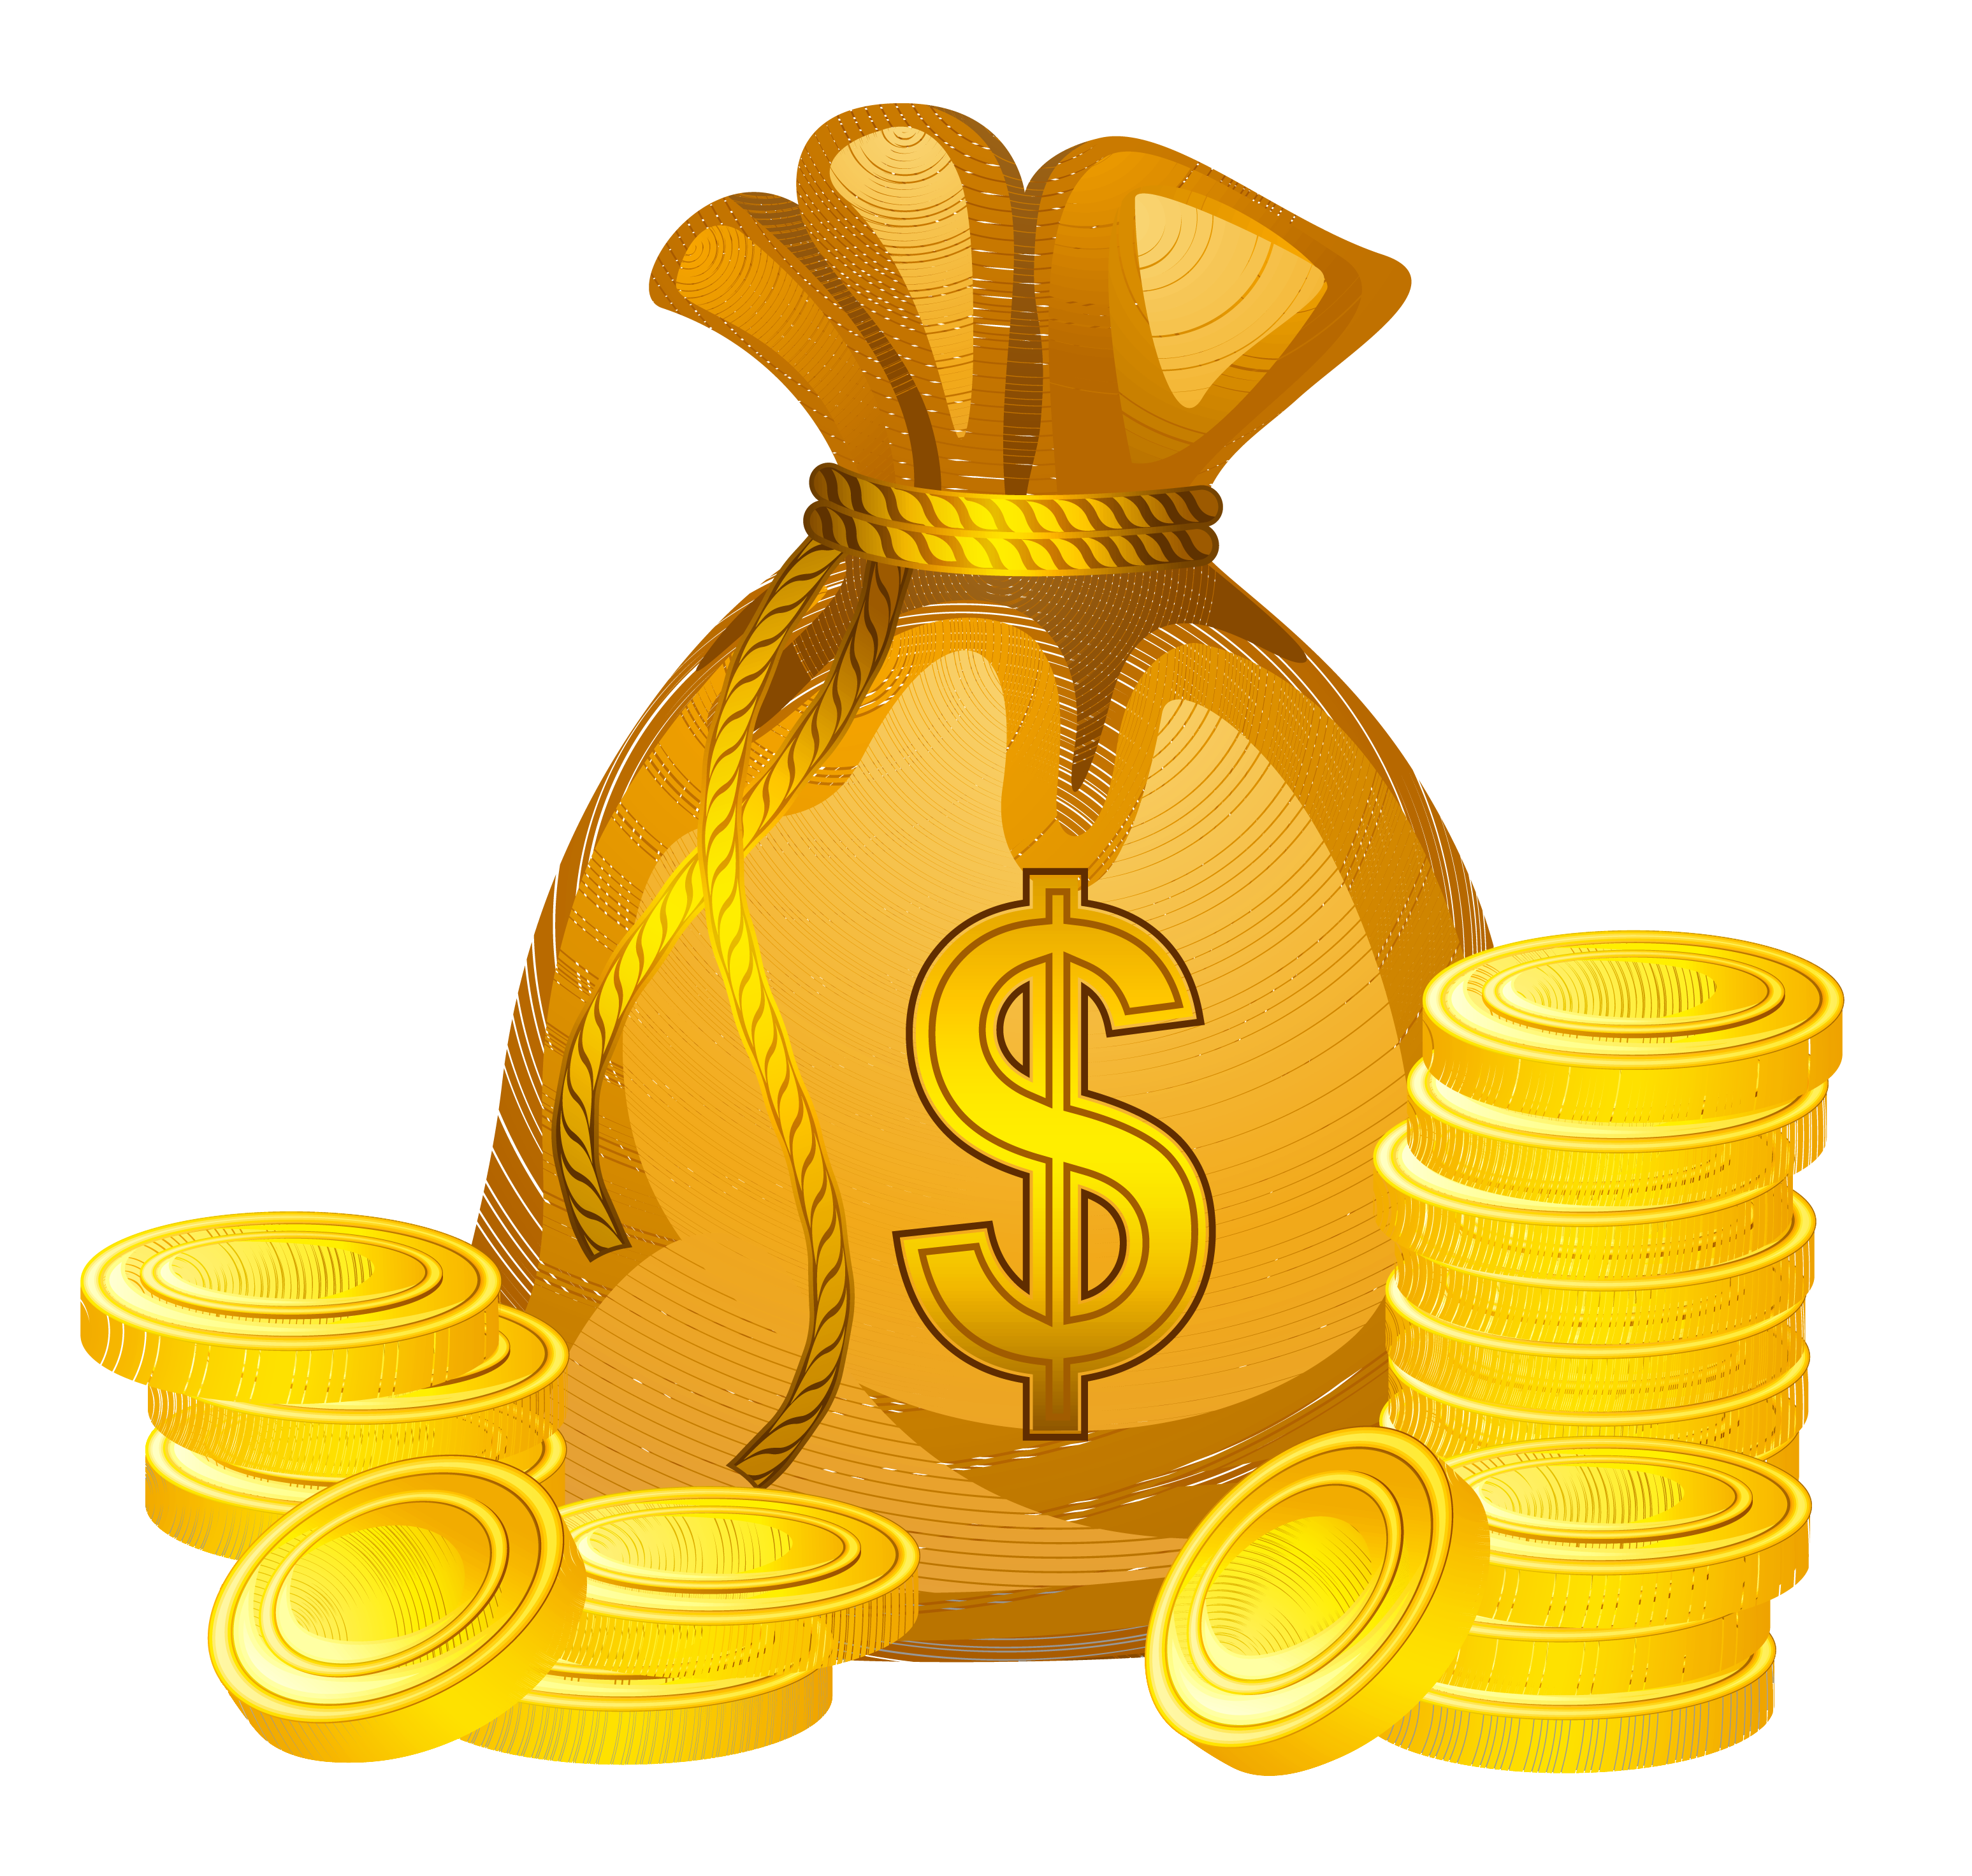 HD PNG Money image #40456